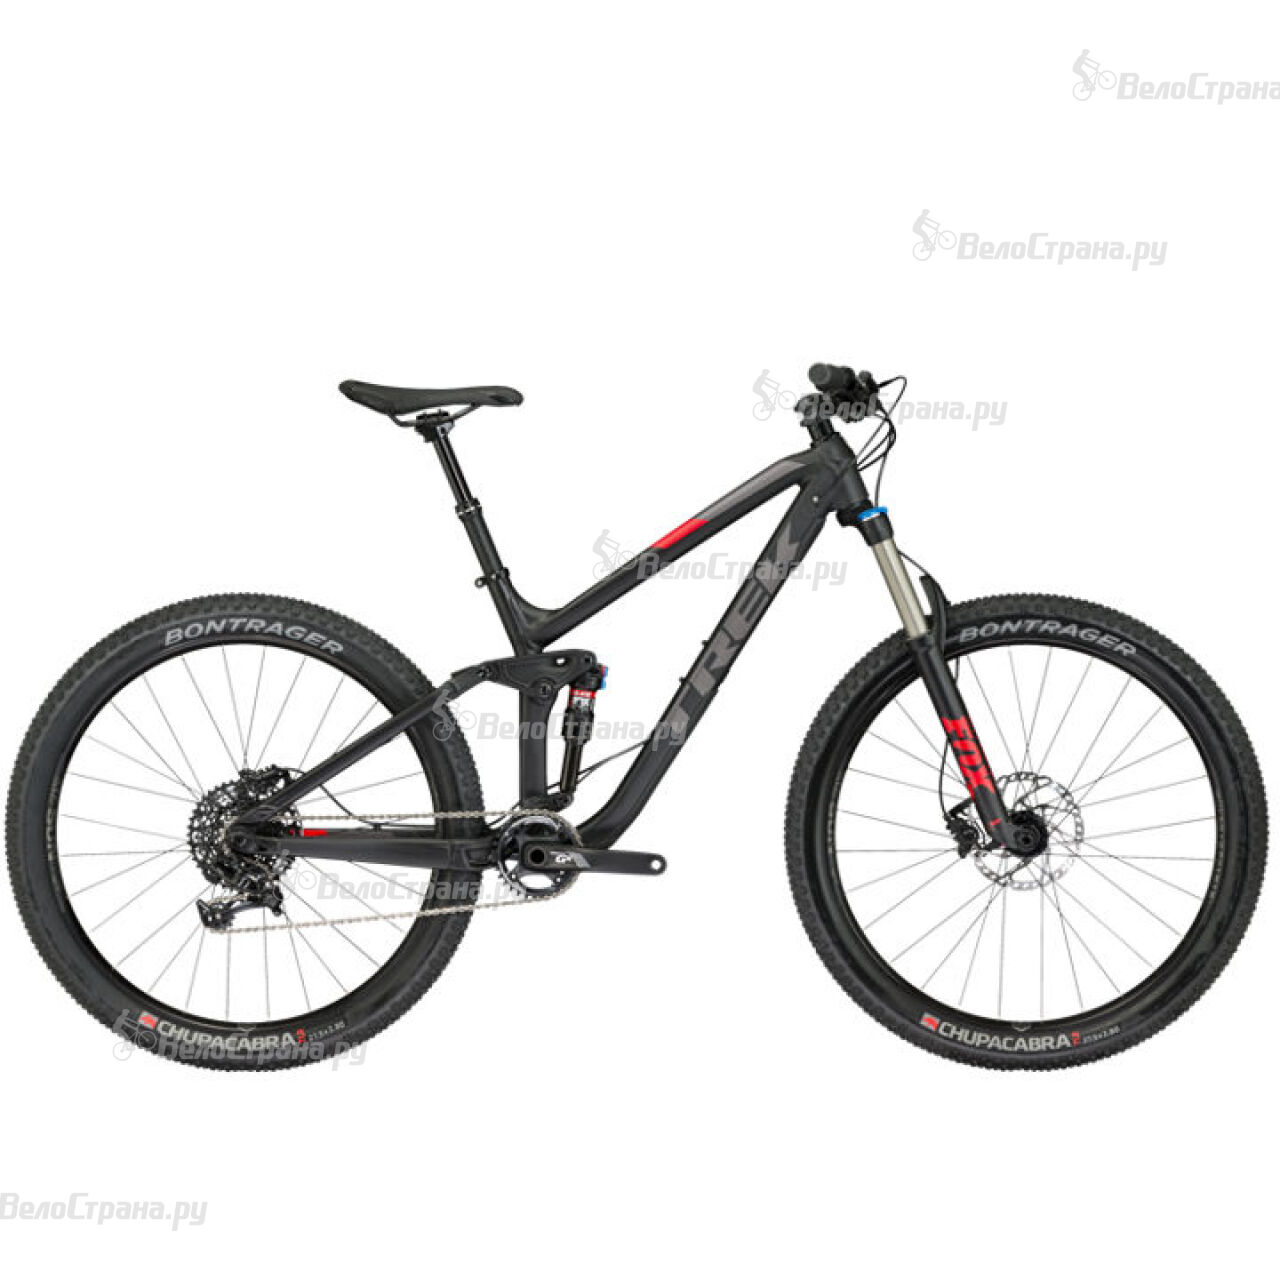 Велосипед Trek Fuel EX 8 27.5 PLUS (2017) велосипед trek fuel ex 9 29 2017